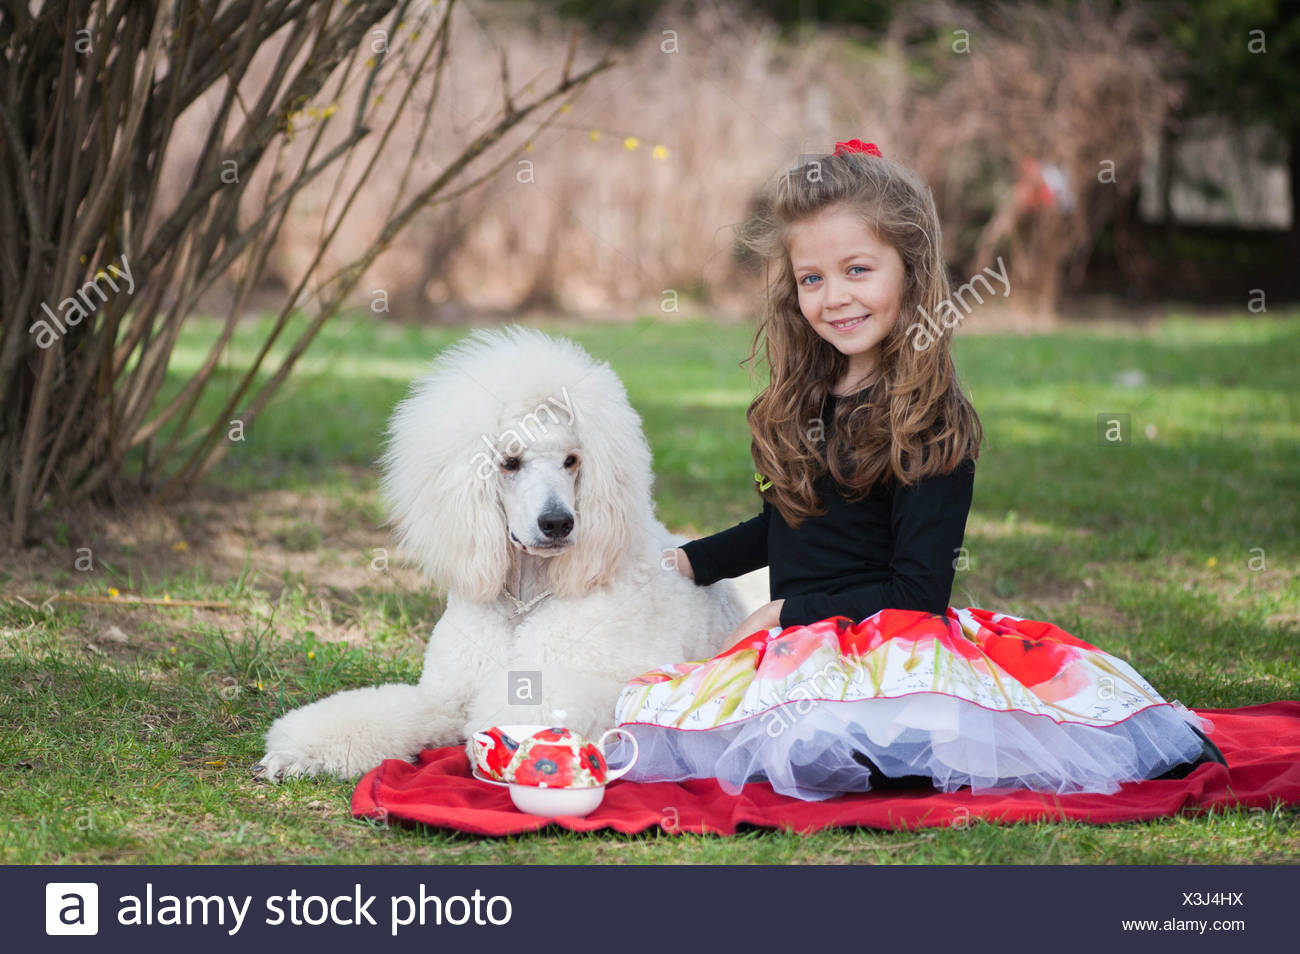 Portrait of girl (6-7) and white poodle on picnic blanket - Stock Image